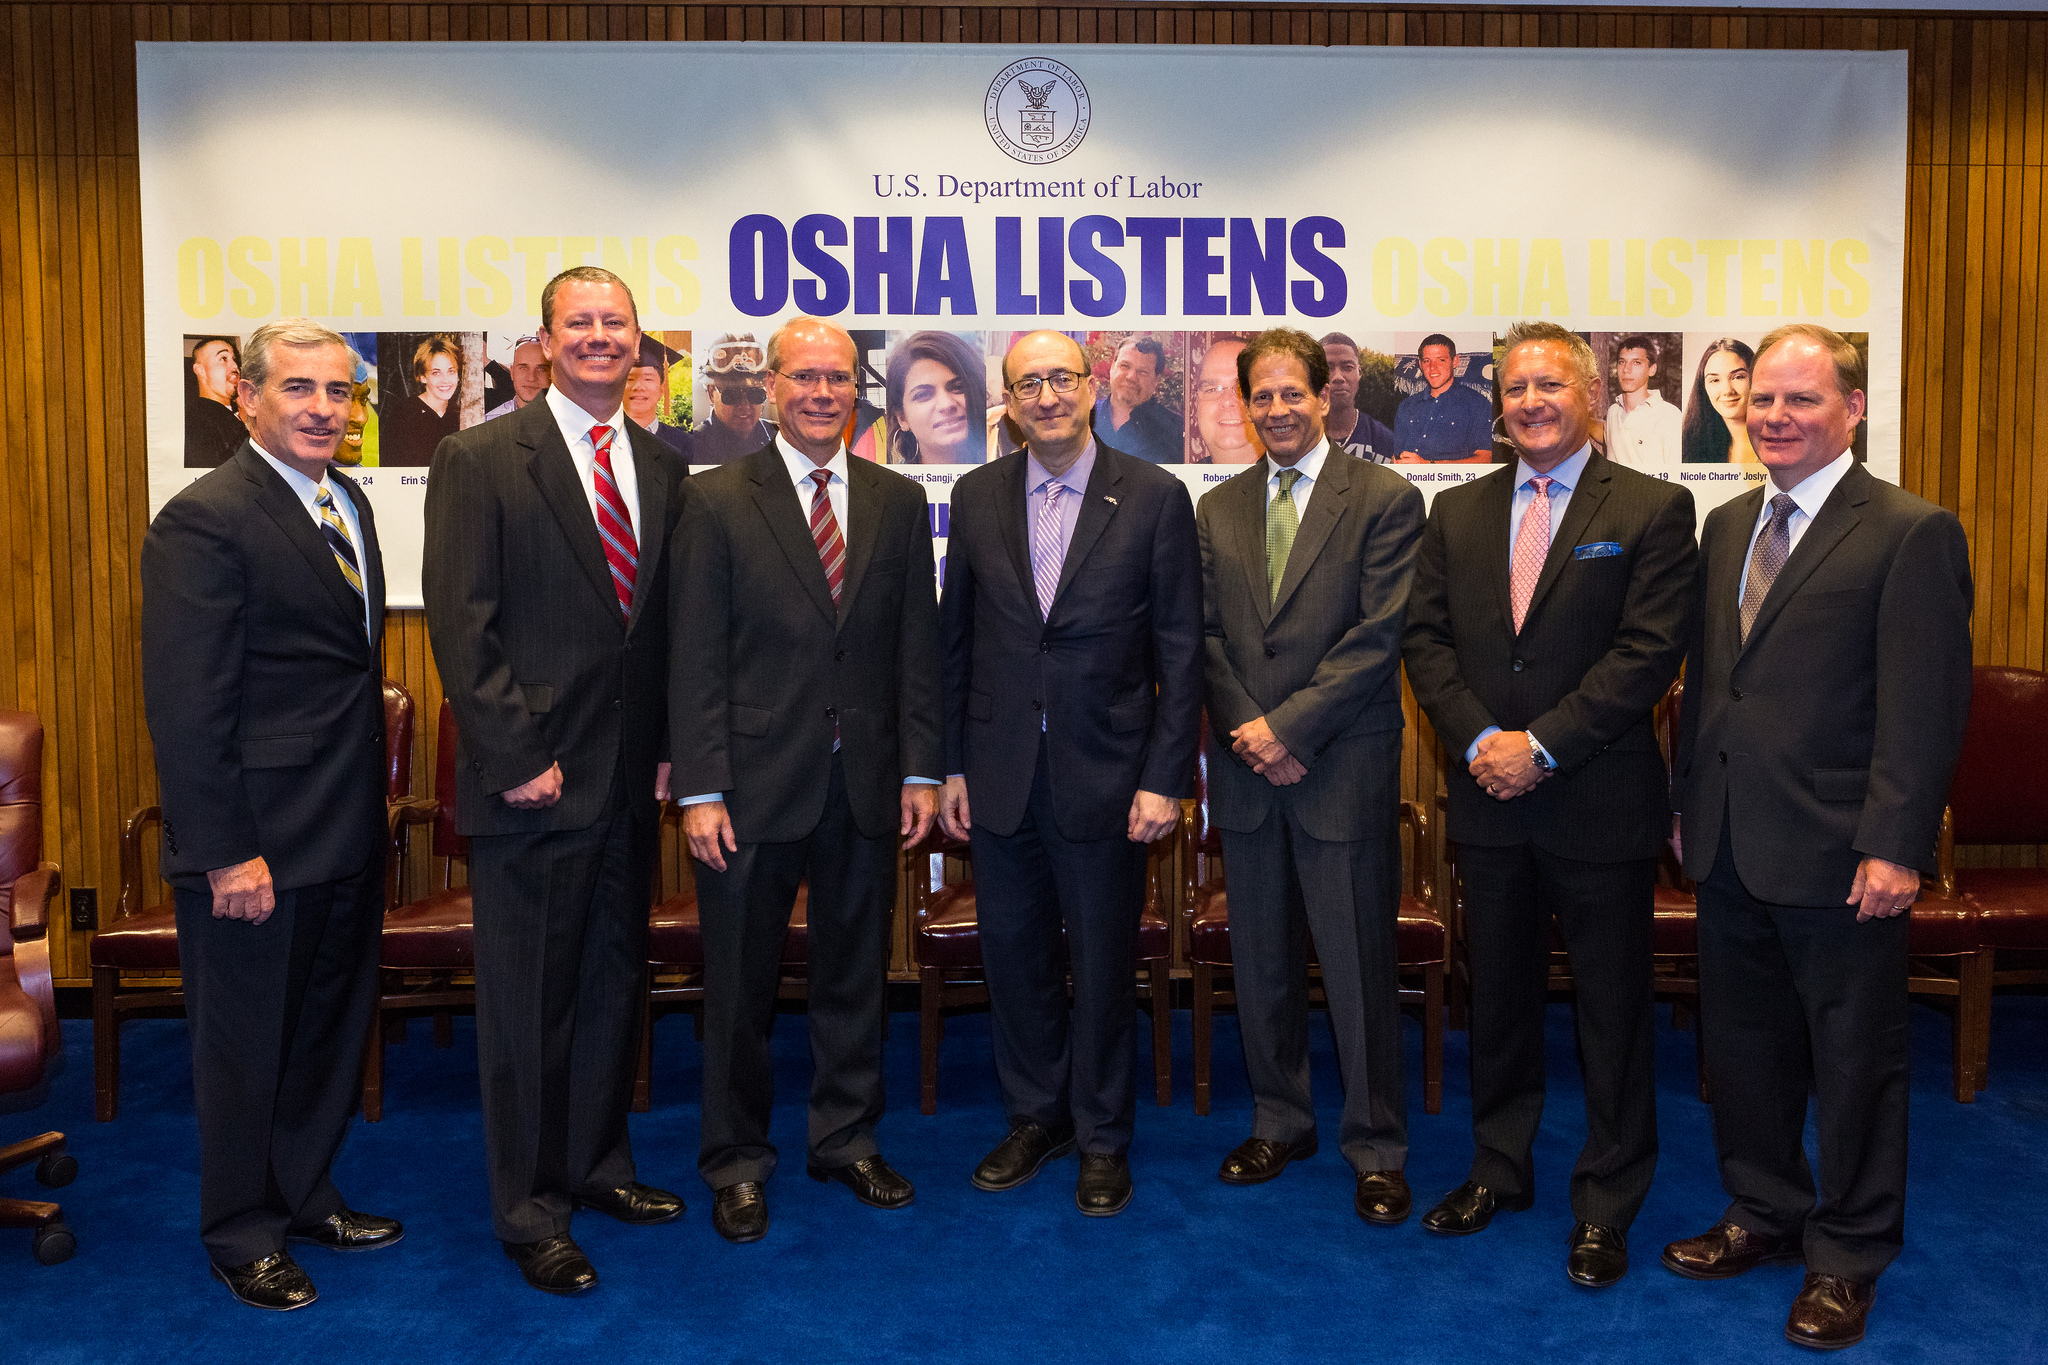 Then-Assistant Secretary Dr. David Michaels, USDOL-OSHA (center) with representatives of the Industrial Truck Association on June 13, 2016.